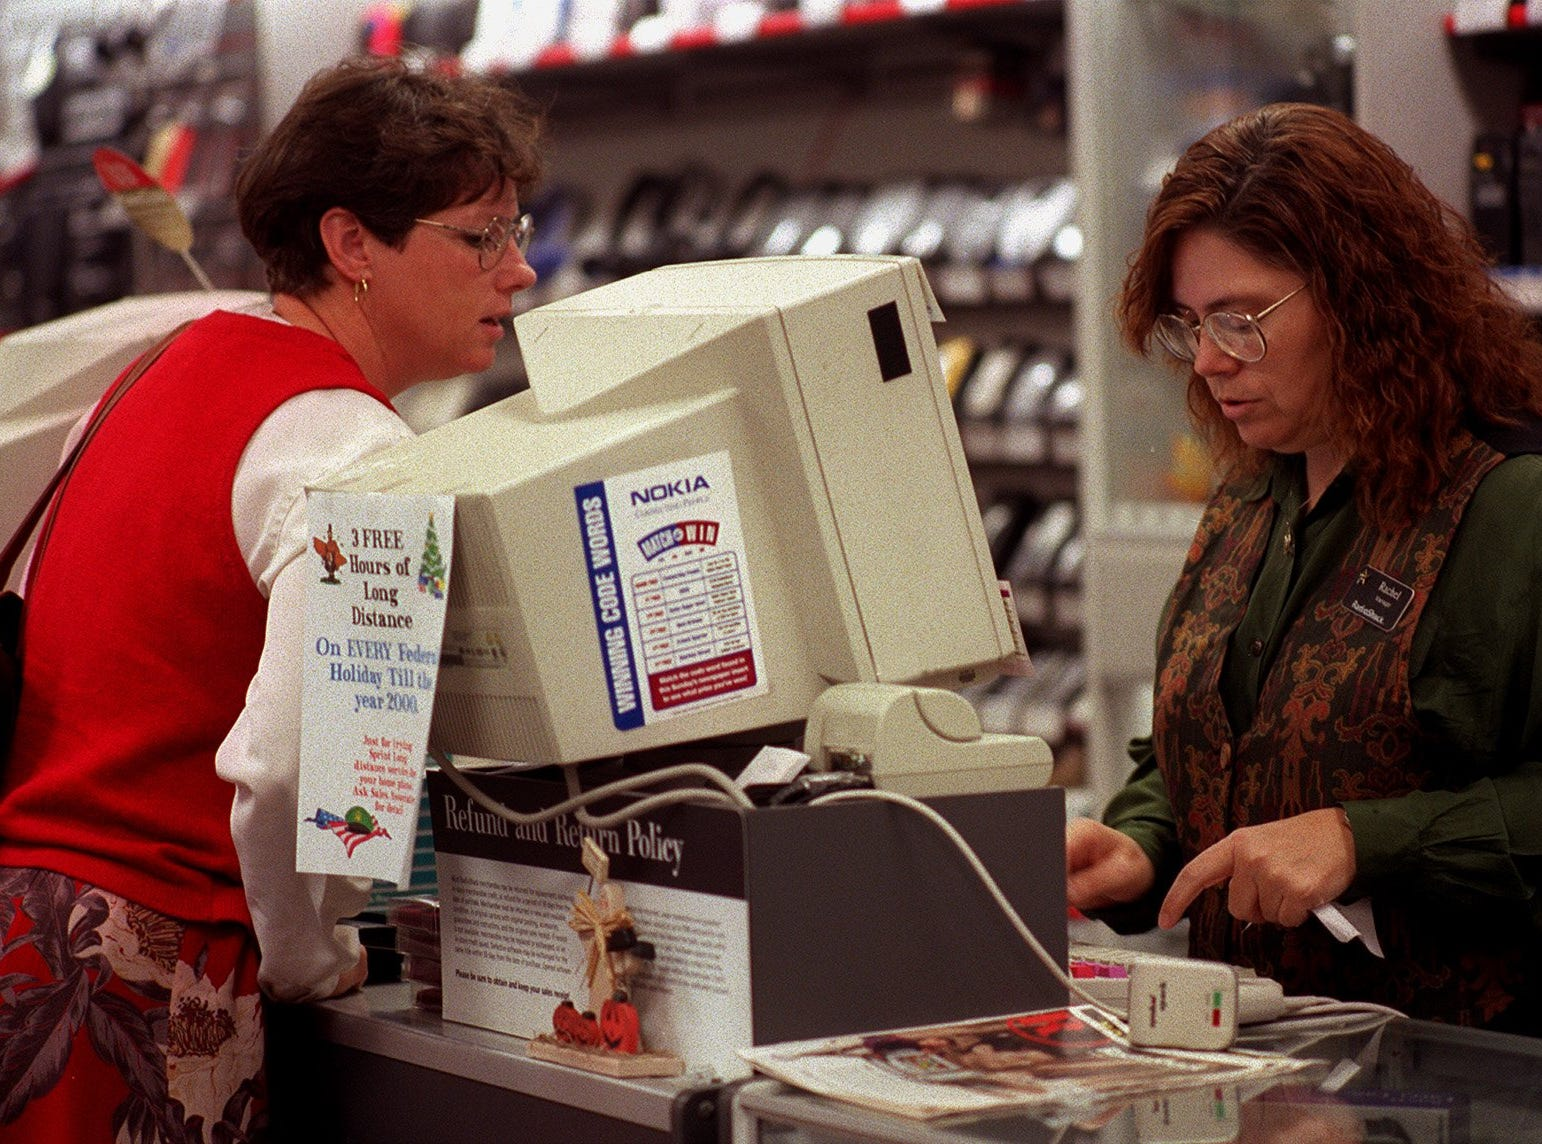 Maureen Sedlacek of Keosauqua looks over at Rachel Eveland,manager of Radio Shack, as Eveland gets some information from her. Sedlacek was picking up some accessories for her computer at Radio Shack which is located in the Valley West Mall in West Des Moines on Oct. 28, 1998.